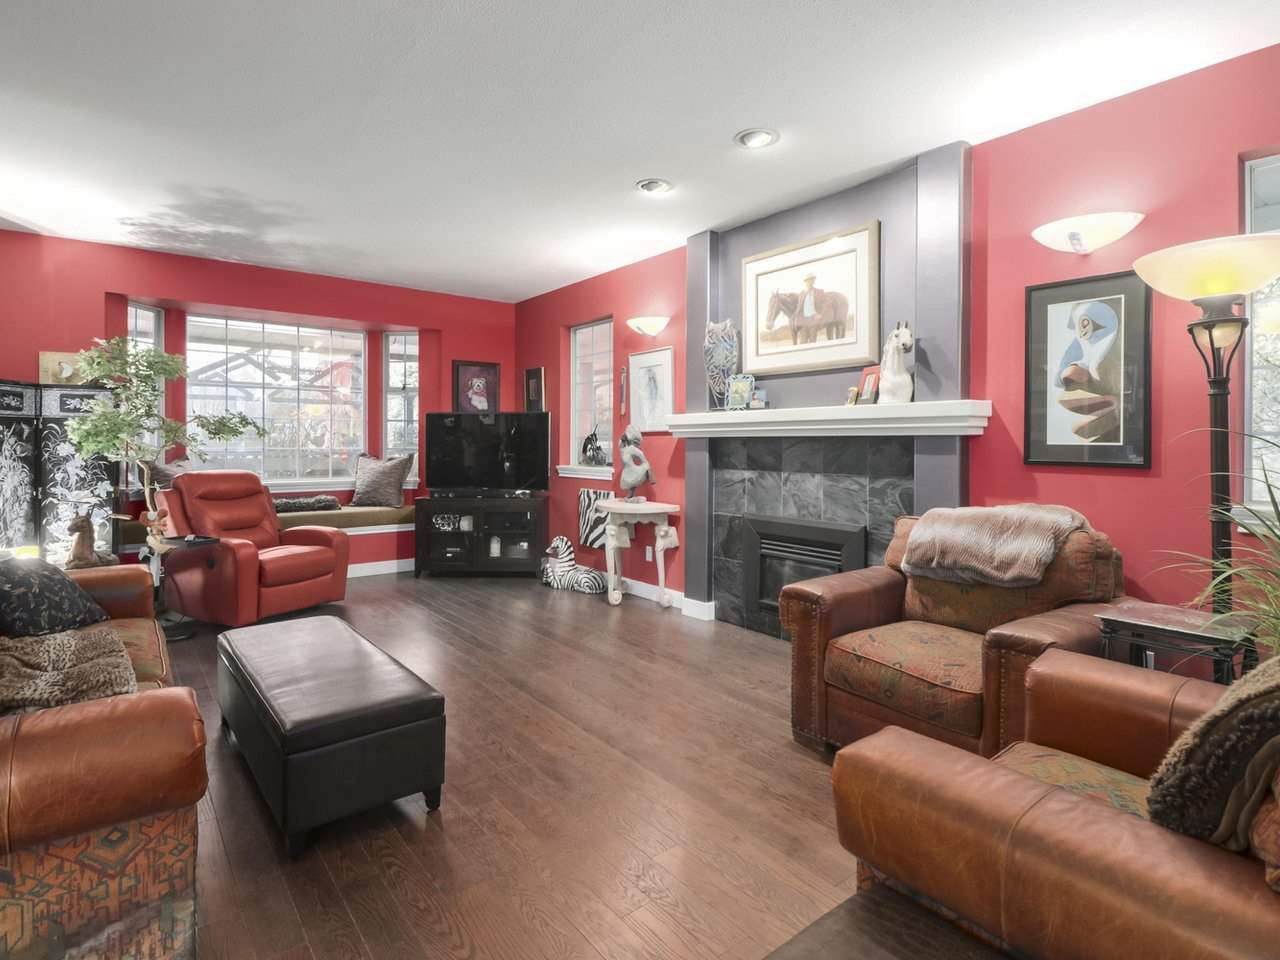 Photo 6: Photos: 13957 32 Avenue in Surrey: Elgin Chantrell House for sale (South Surrey White Rock)  : MLS®# R2466206